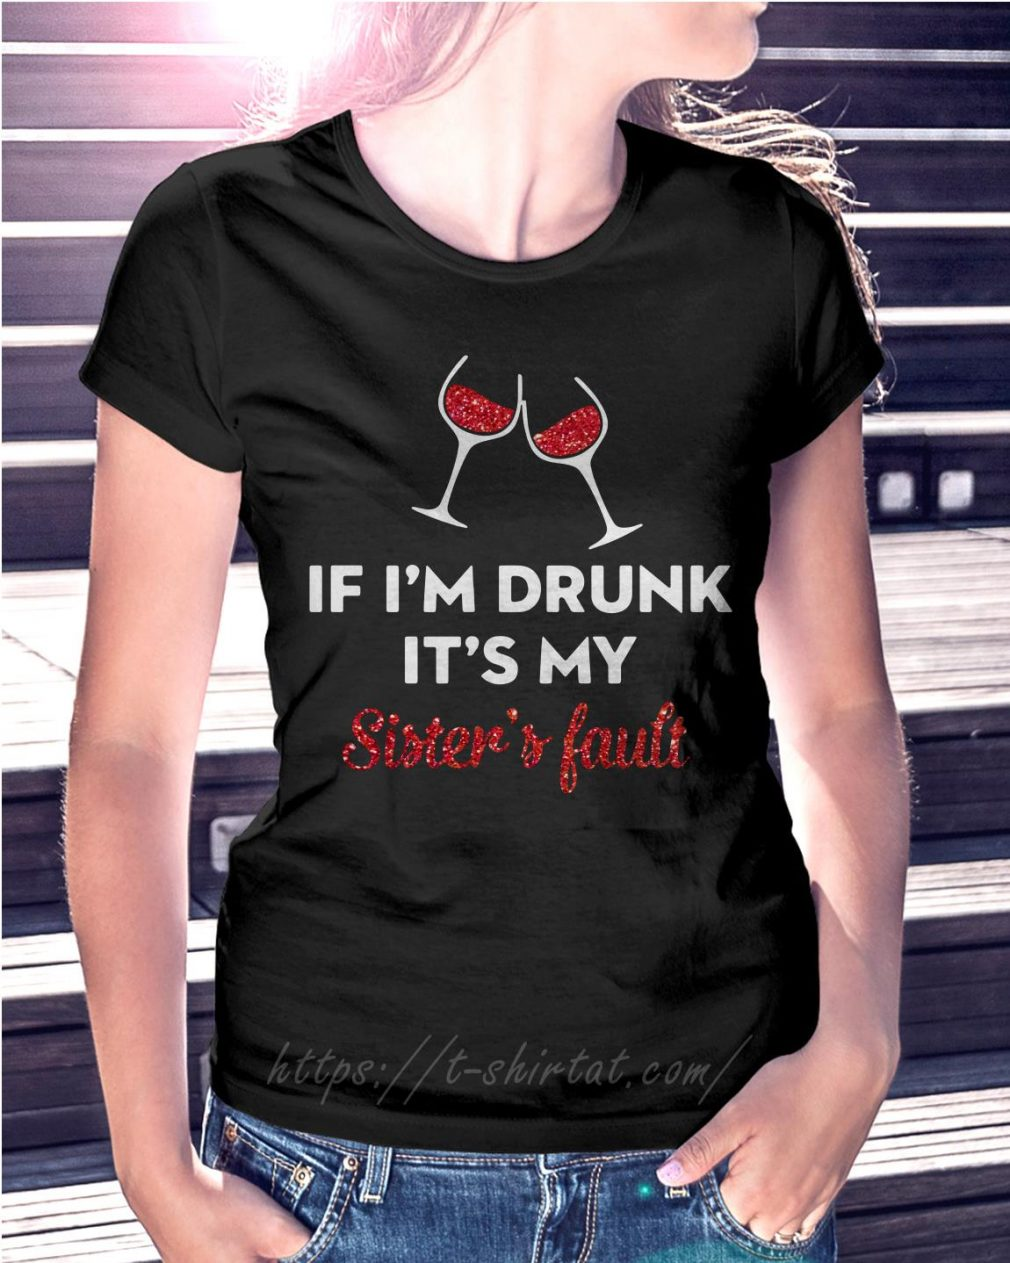 If I'm drunk wine it's my sister's fault